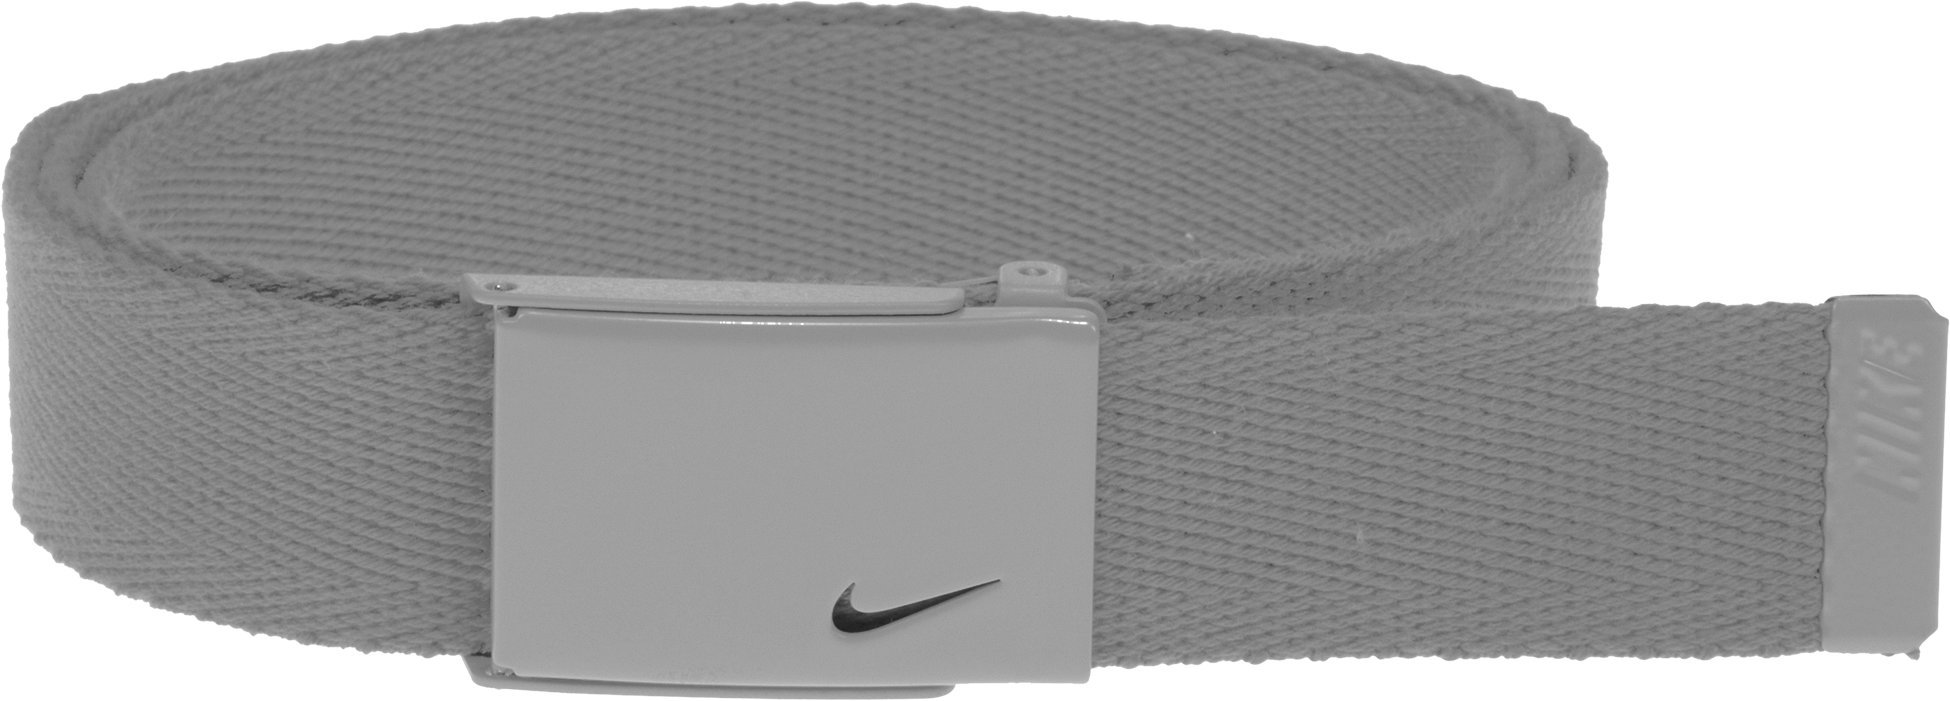 Nike Women's Nike Tech Essentials Single Web Belt, Grey, One Size